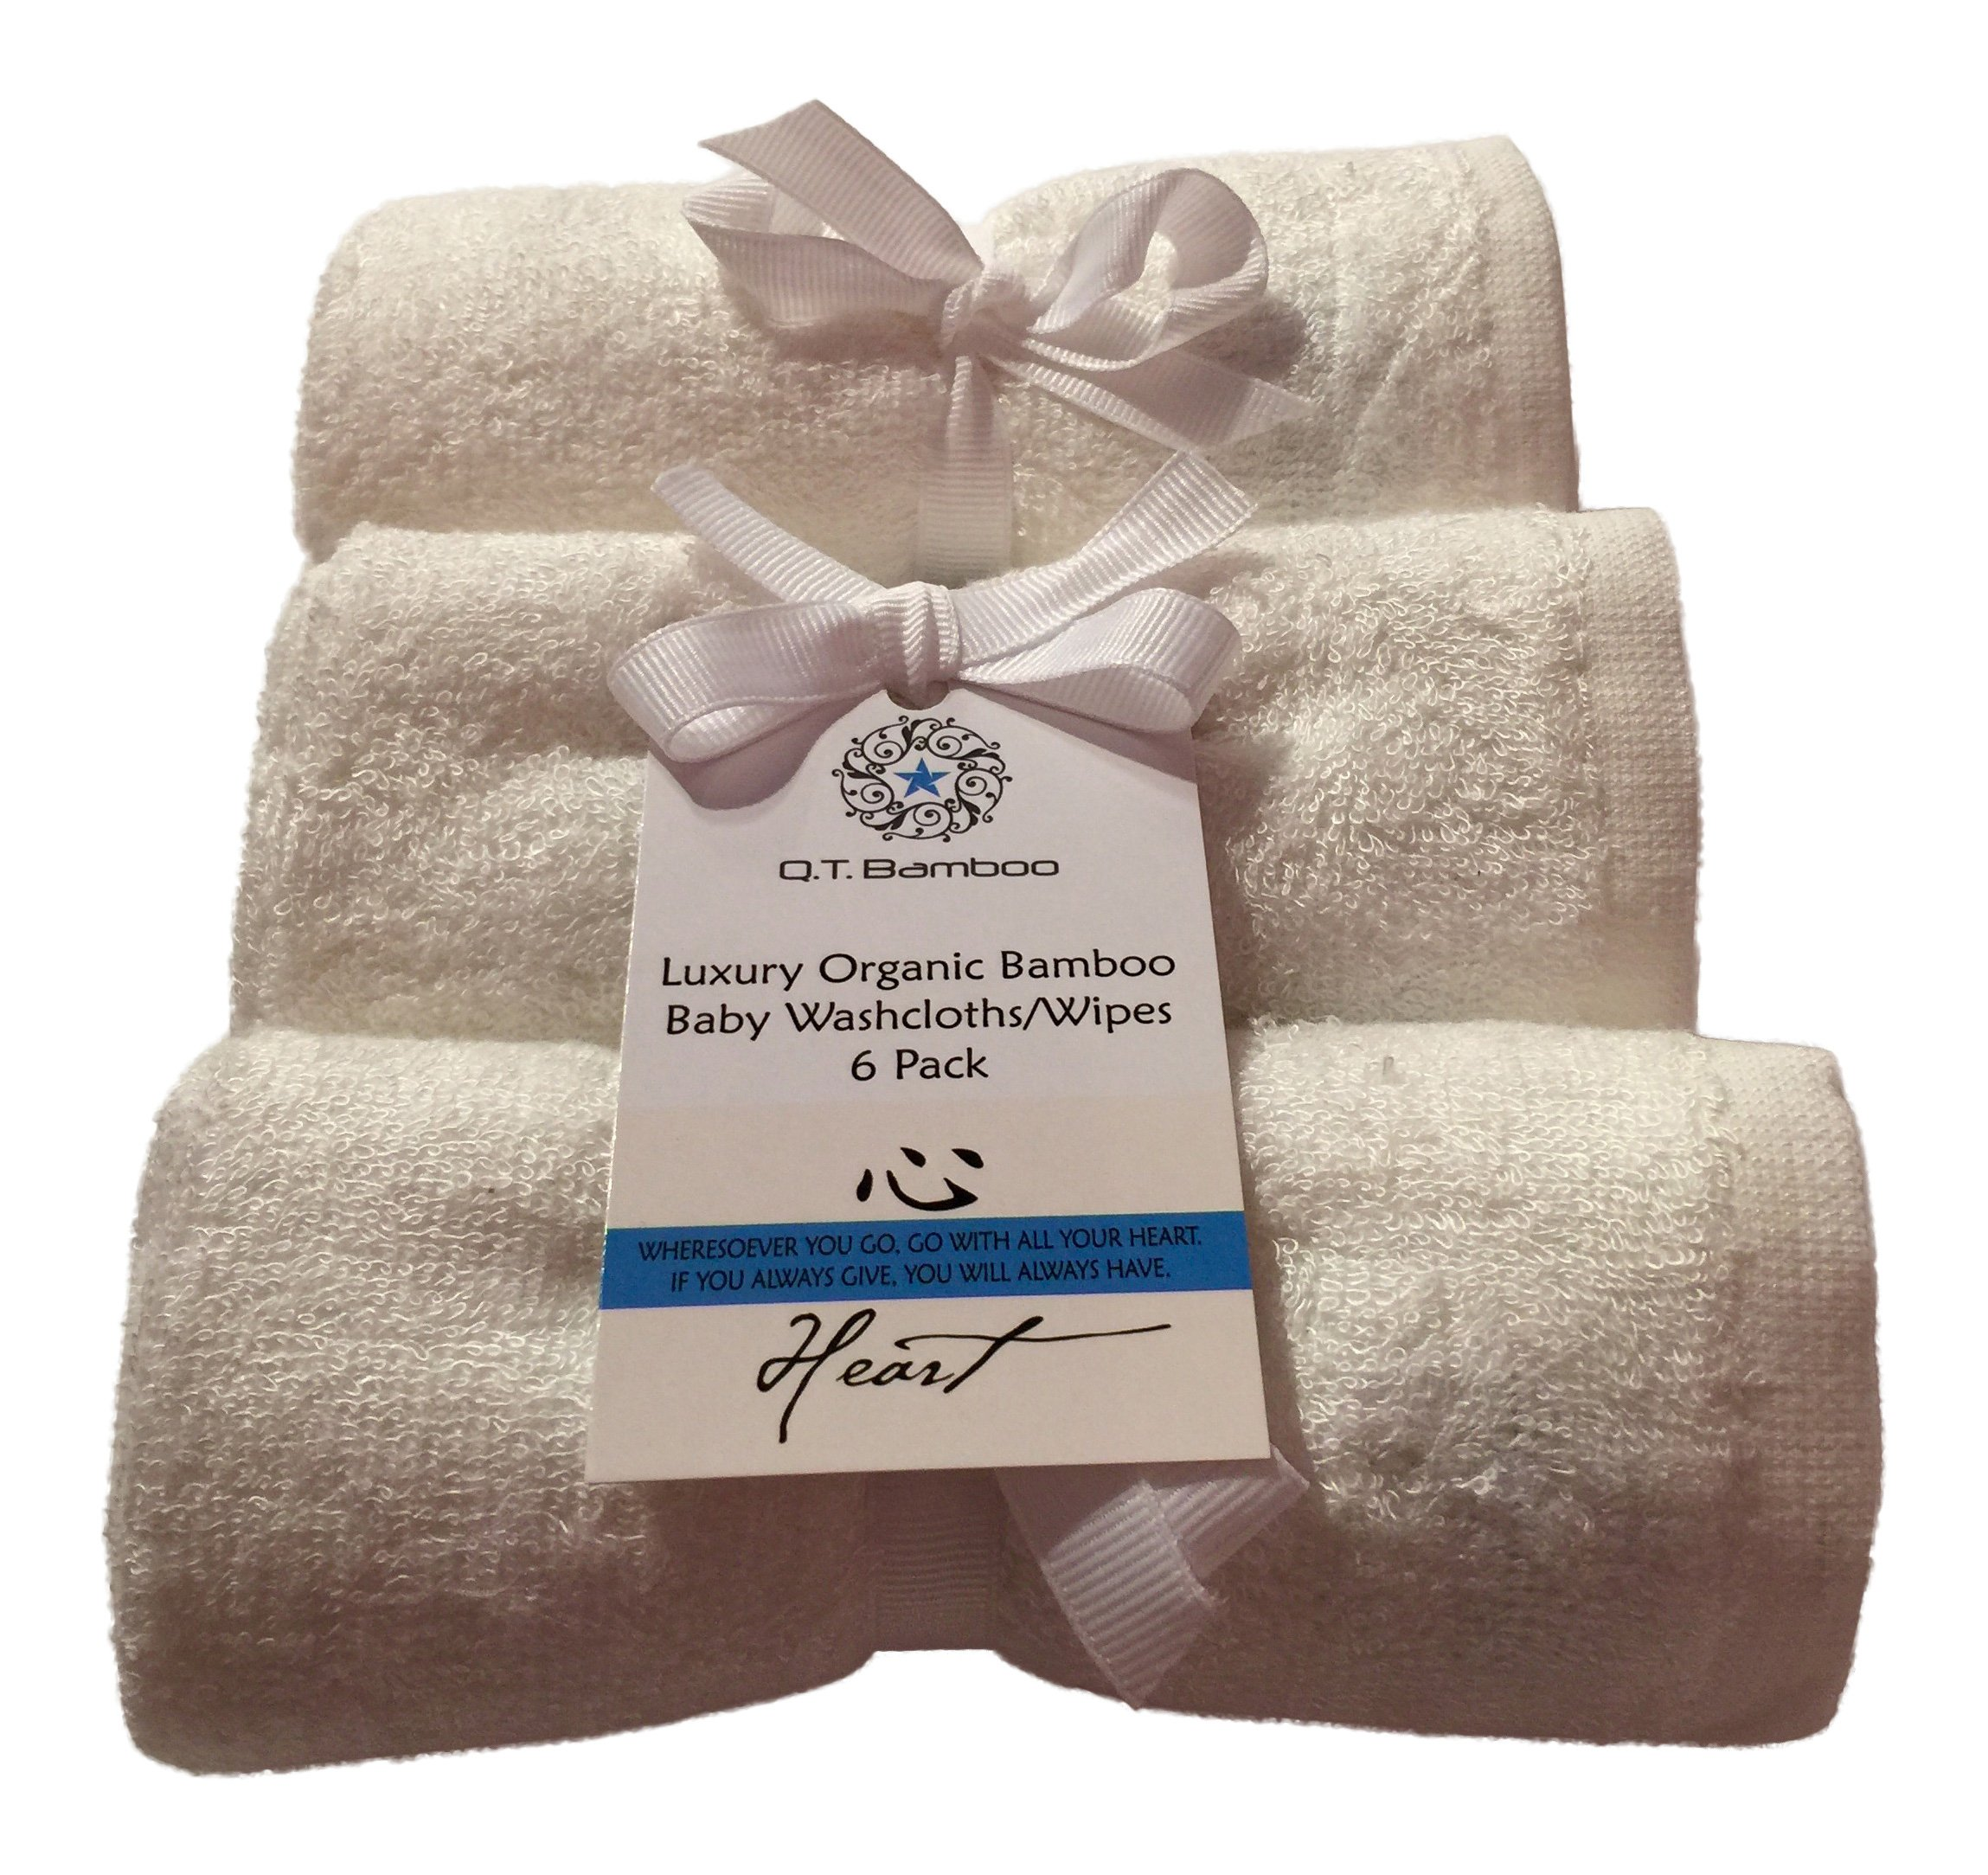 Bamboo Washcloths Face Towels for Sensitive Skin Great for Baby or Adult 6 Pack (White)